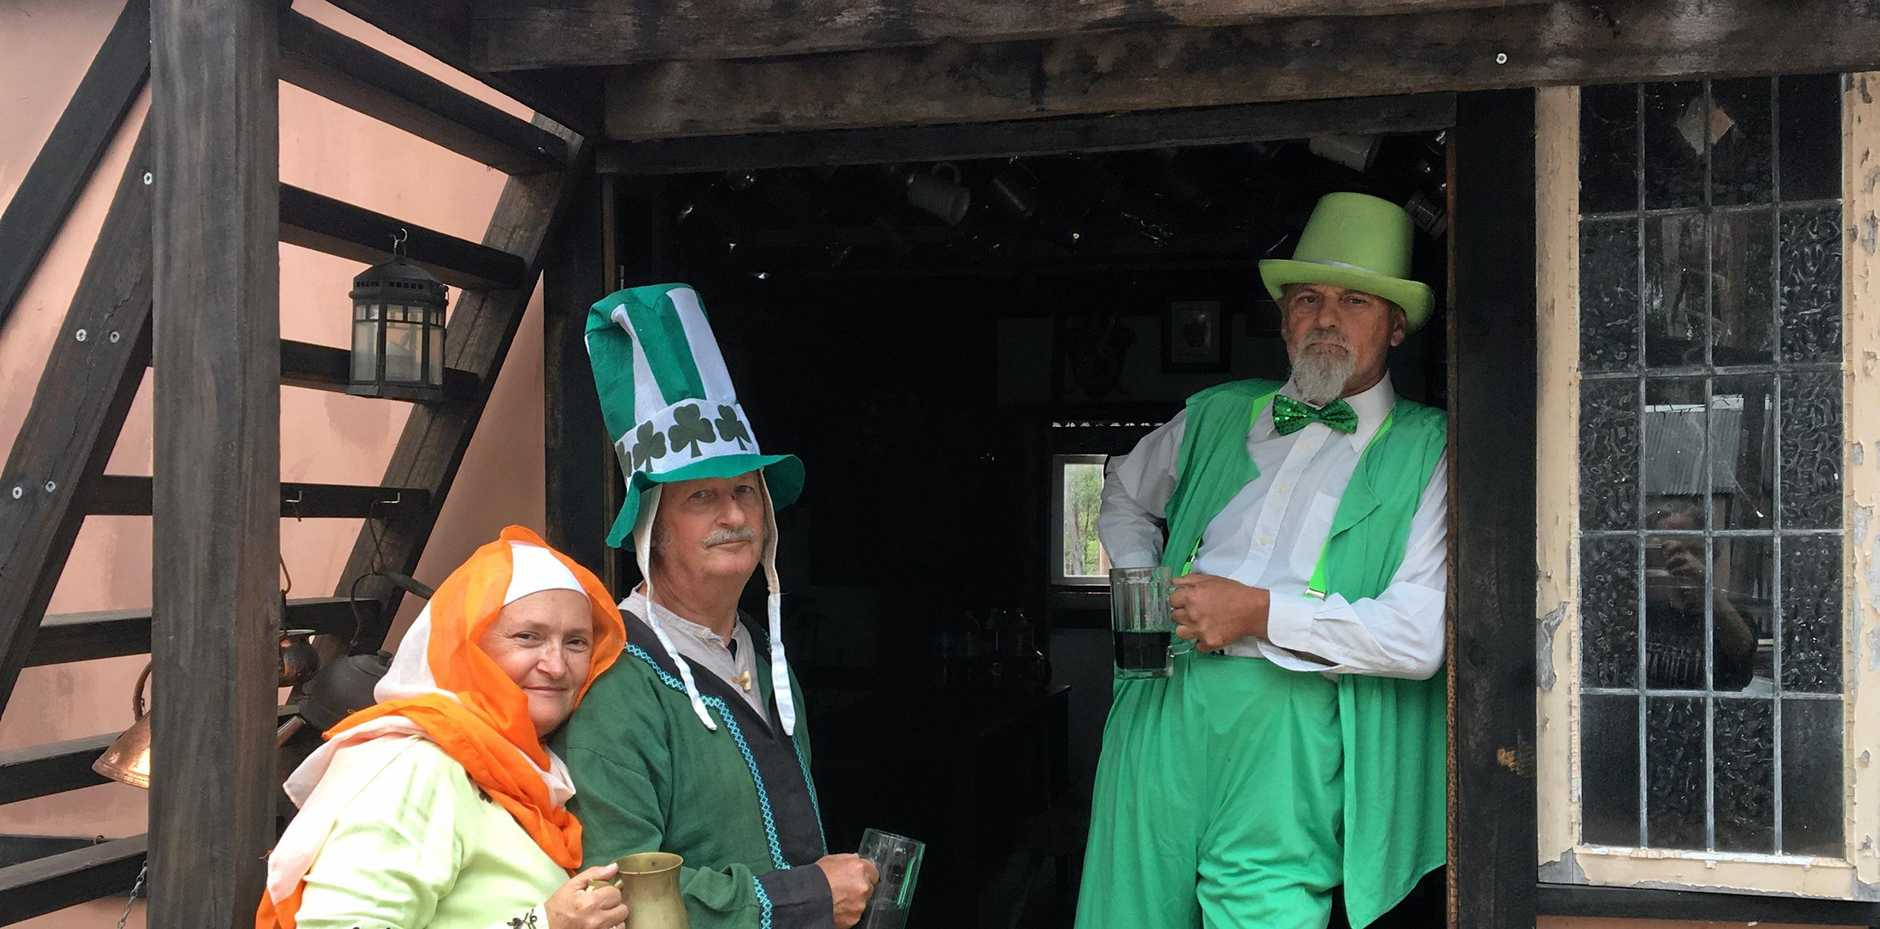 IT'S EASY BEING GREEN: Lady Jennifer and husband Lord Minstrel Steve Bryson with Lord Terence Blake invite you to celebrate St Patrick's Day with fun, laughter, medieval merriment and green beer at Victory Village.